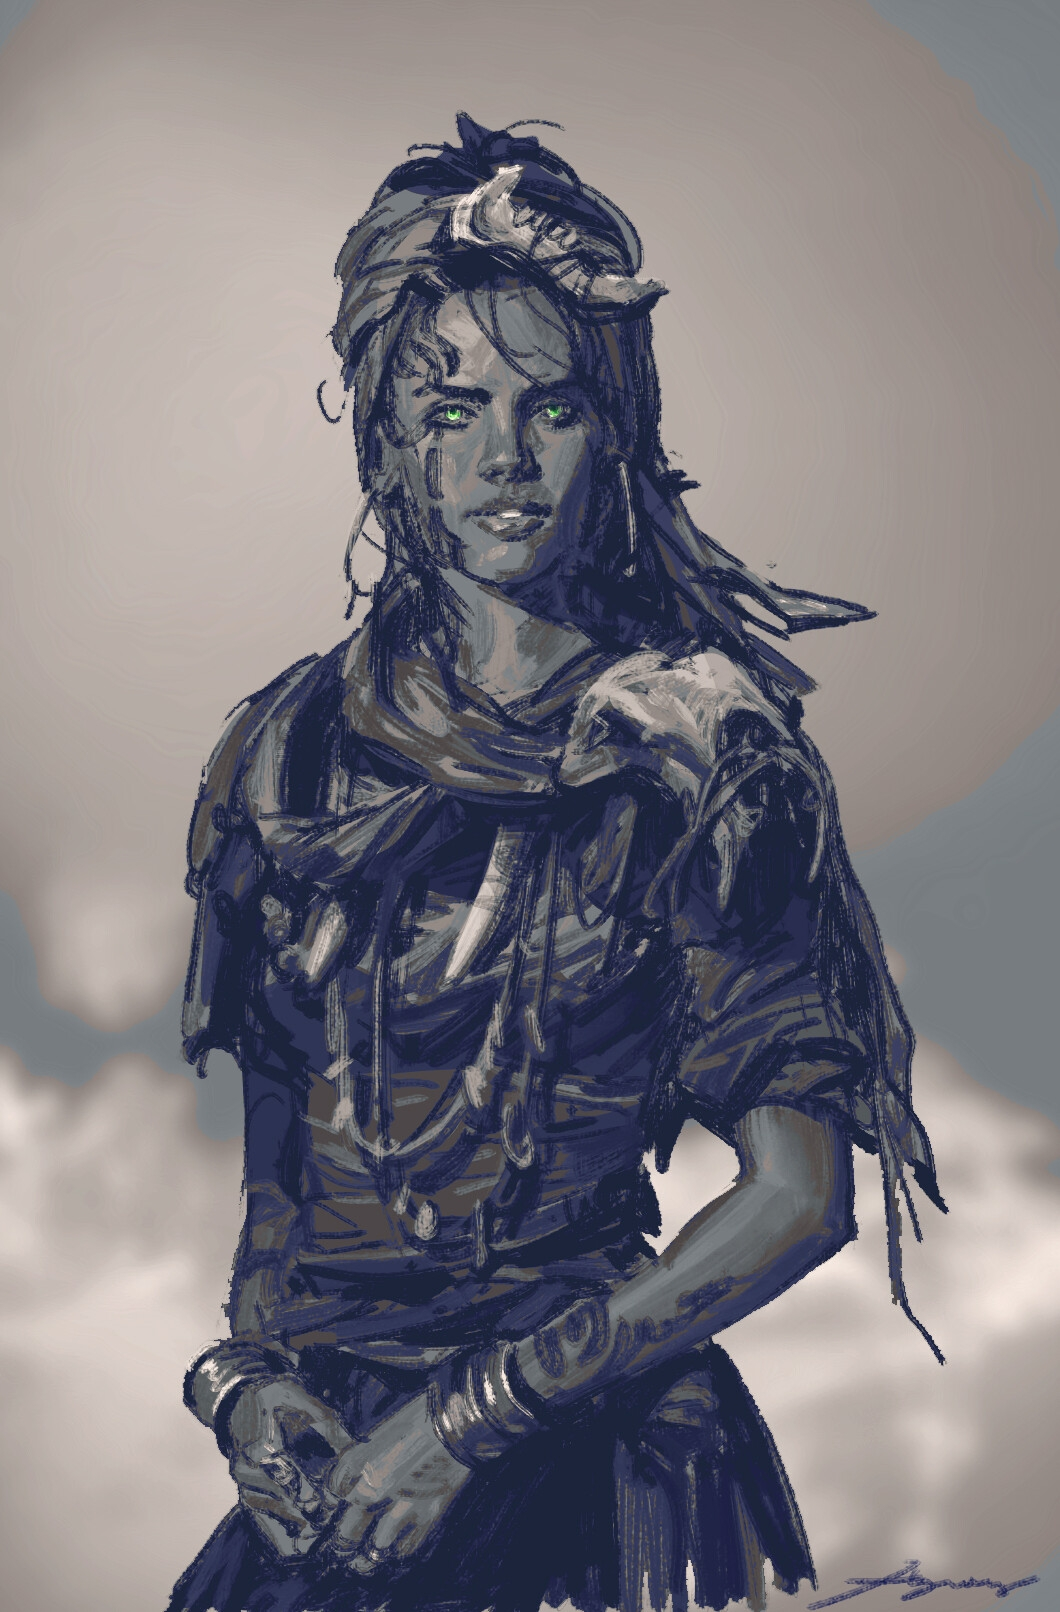 Fantasy concept art from Naughty Dog employee